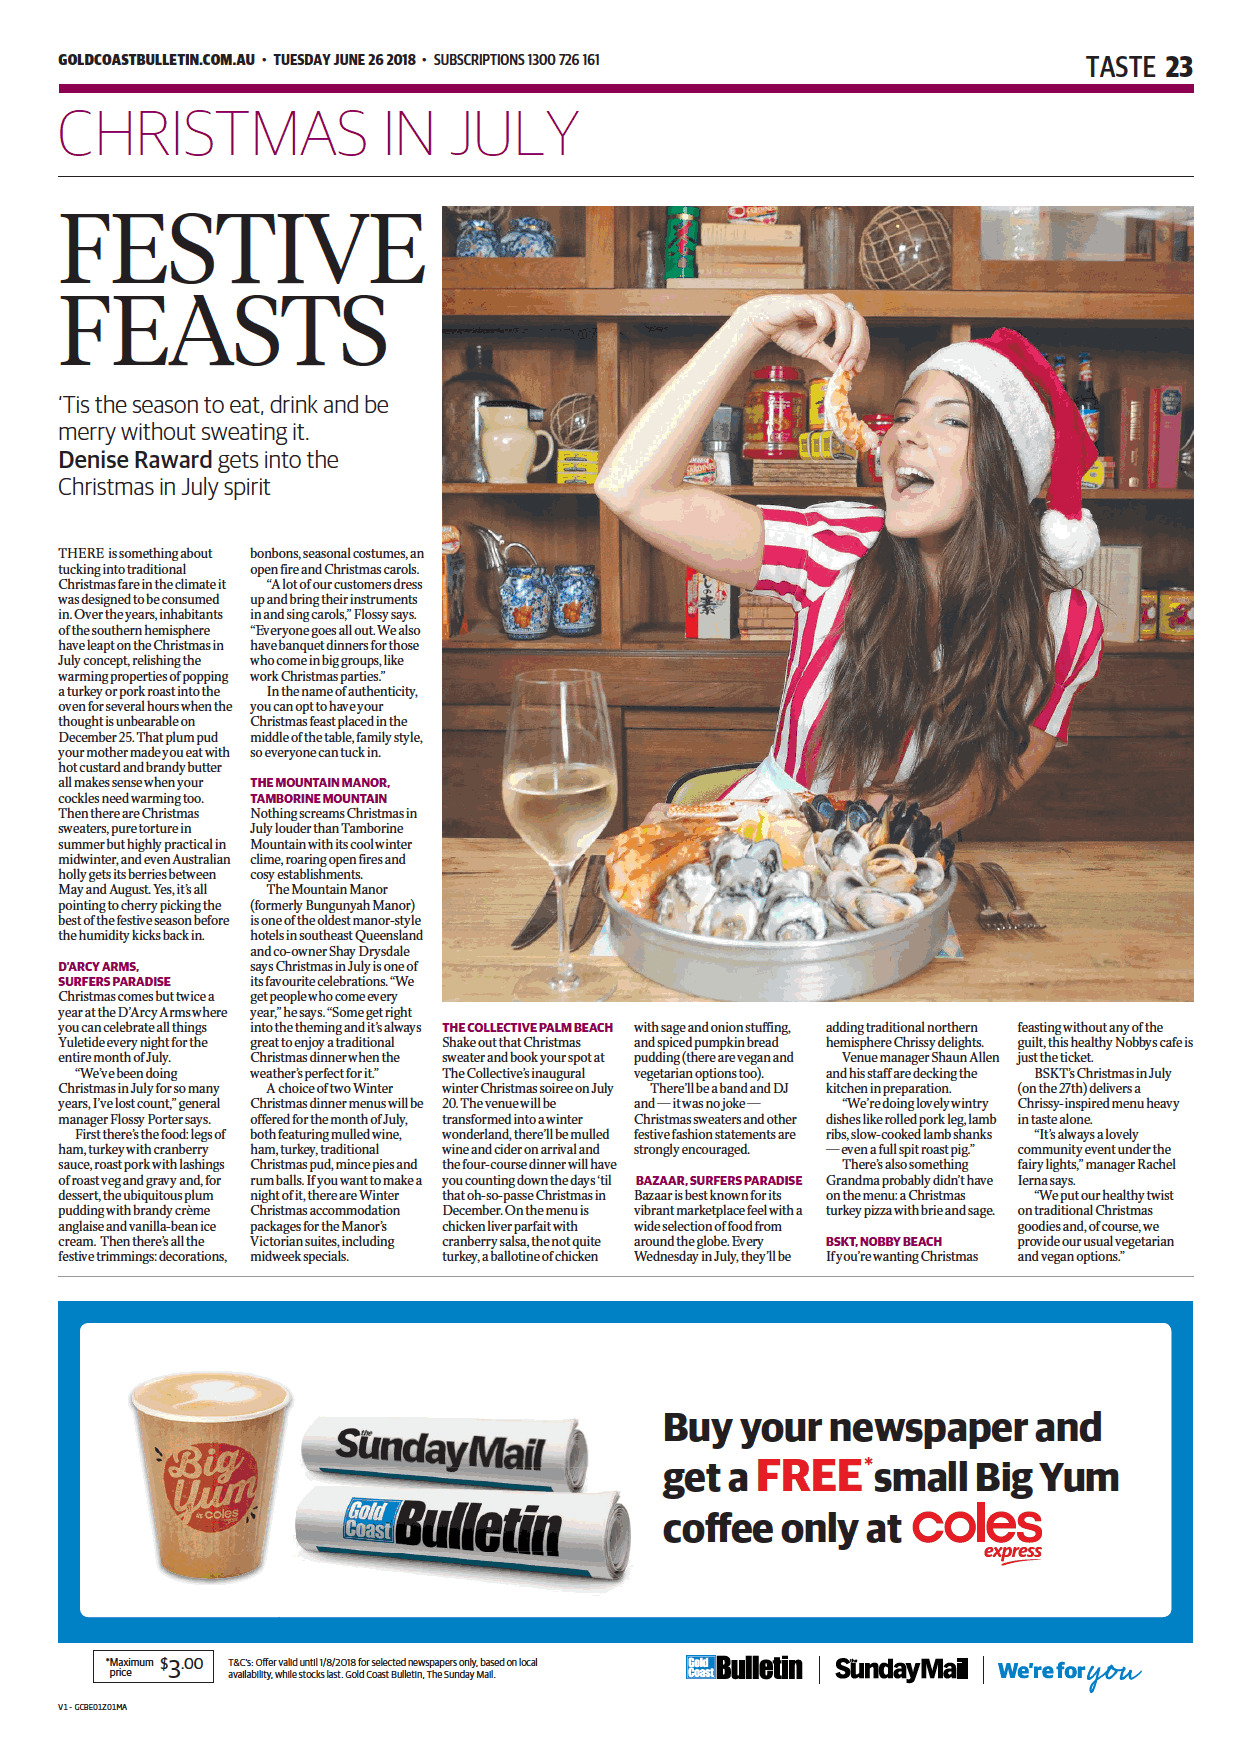 Gold Coast Bulletin - Christmas in July - D'Arcy Arms